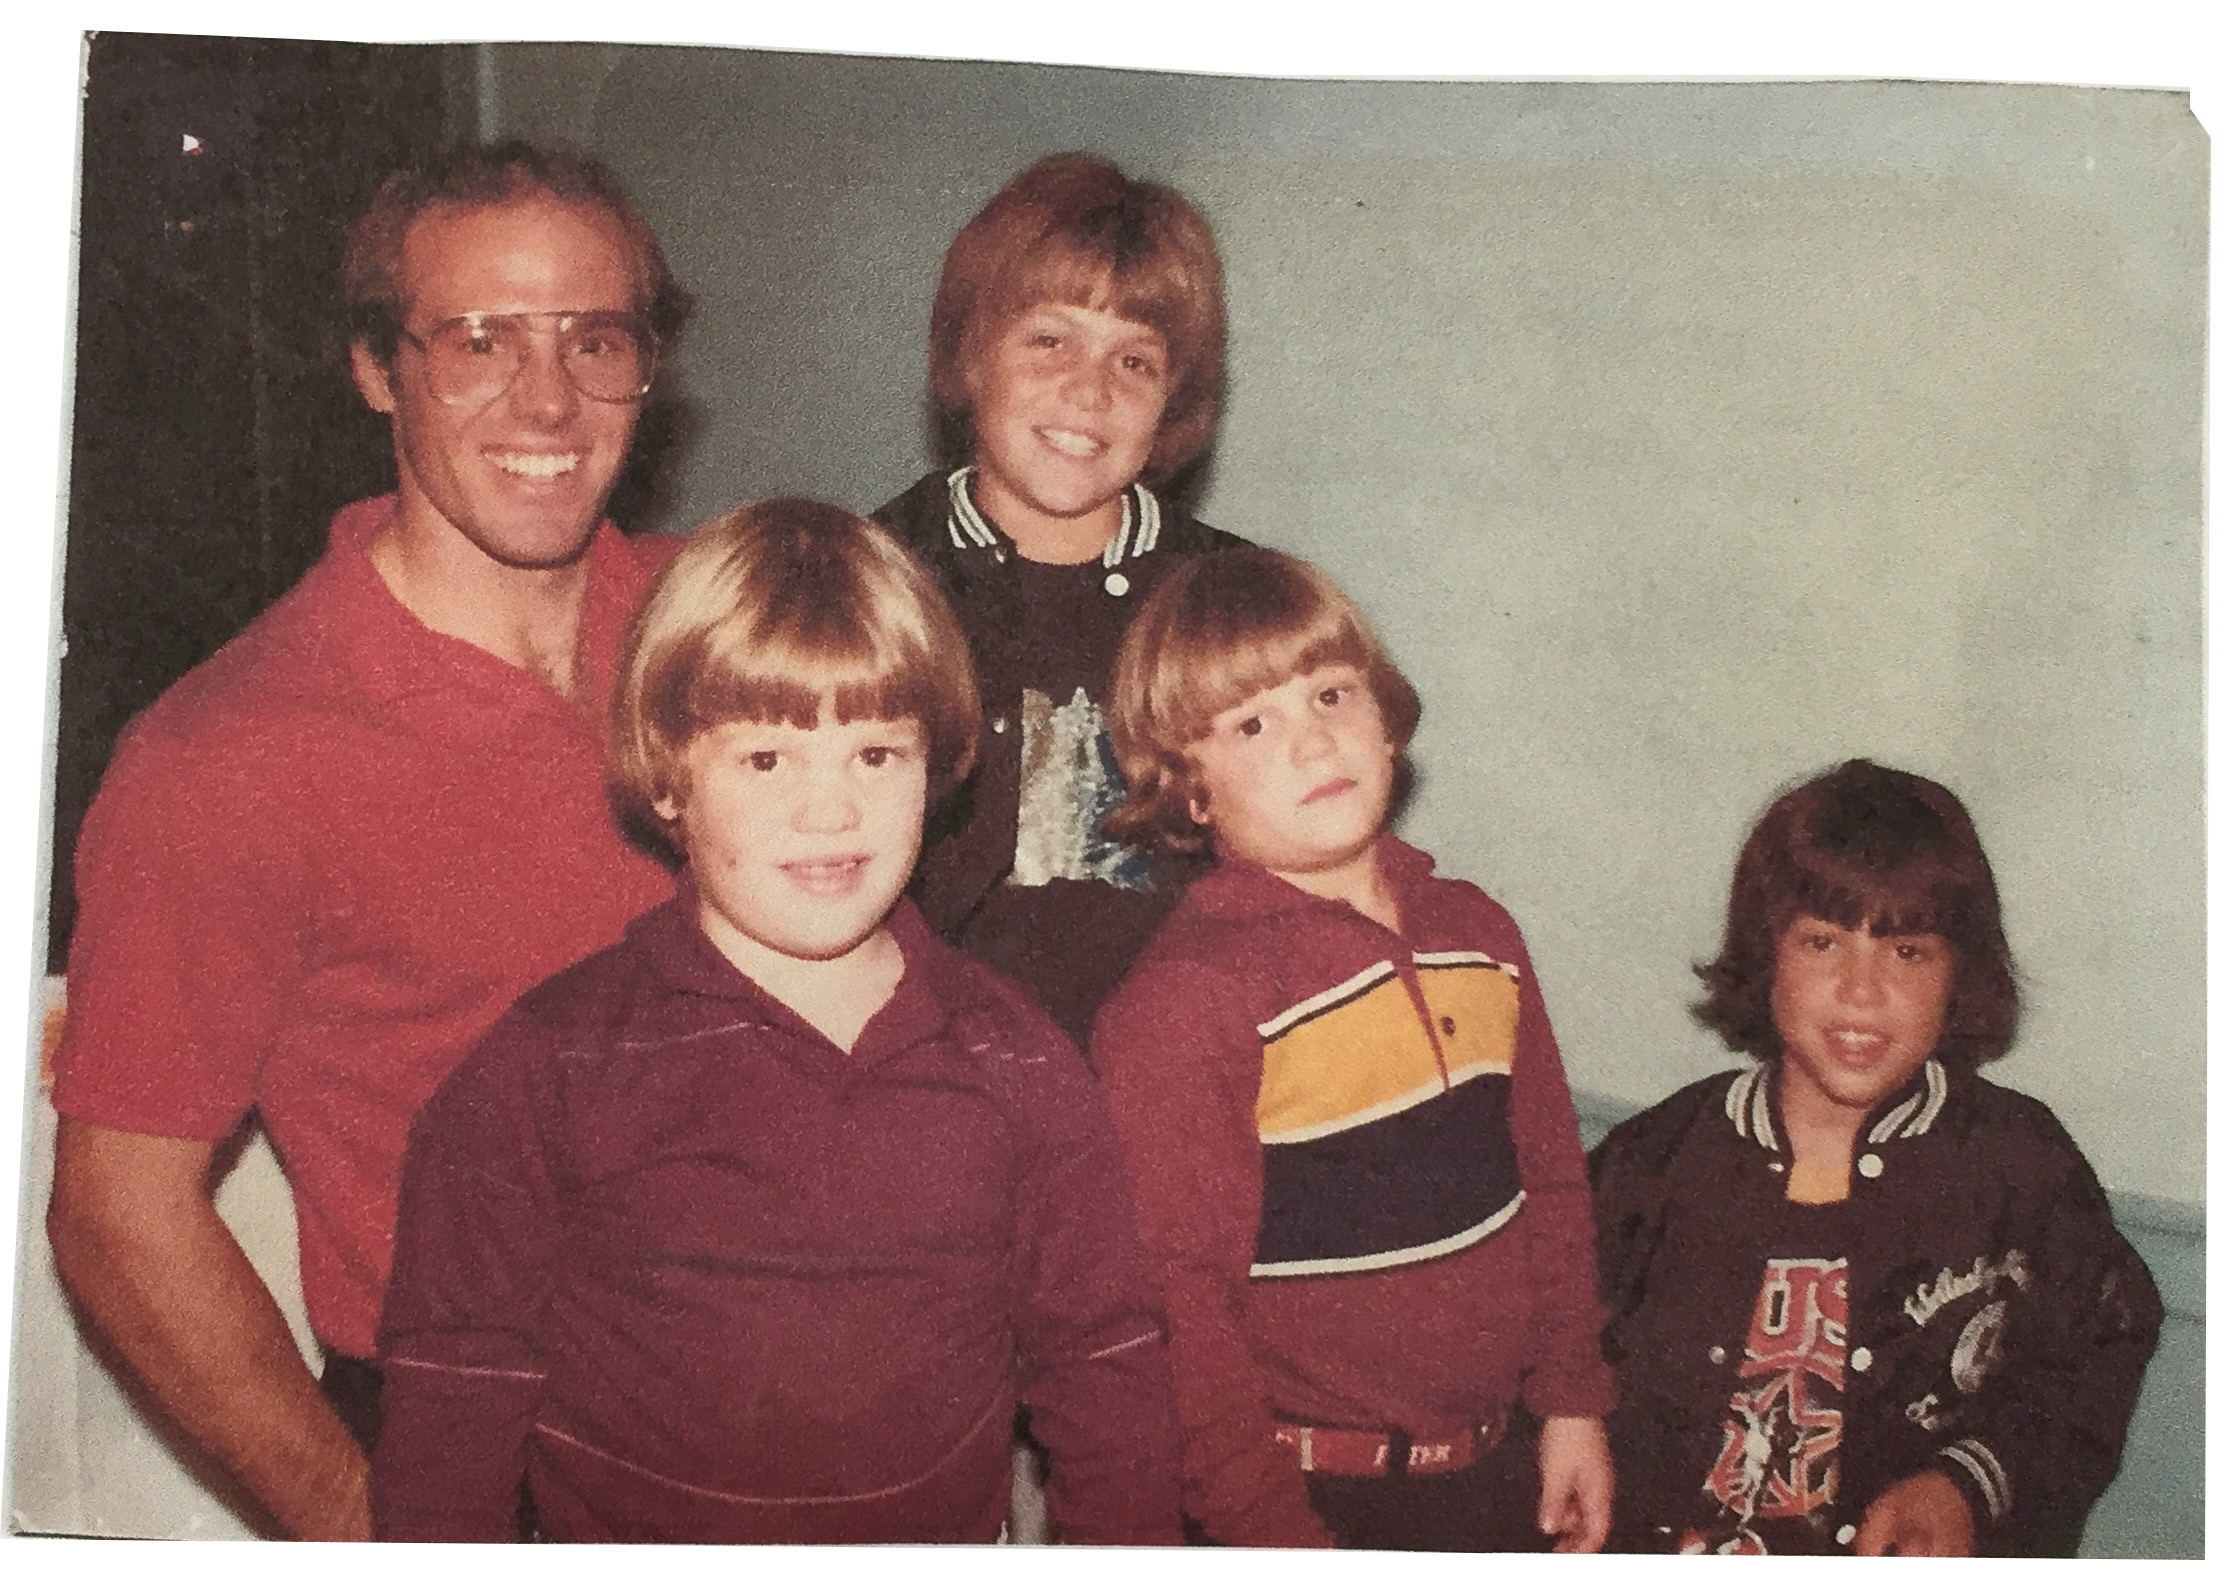 The Joseph boys with Phil Mahre in 1983